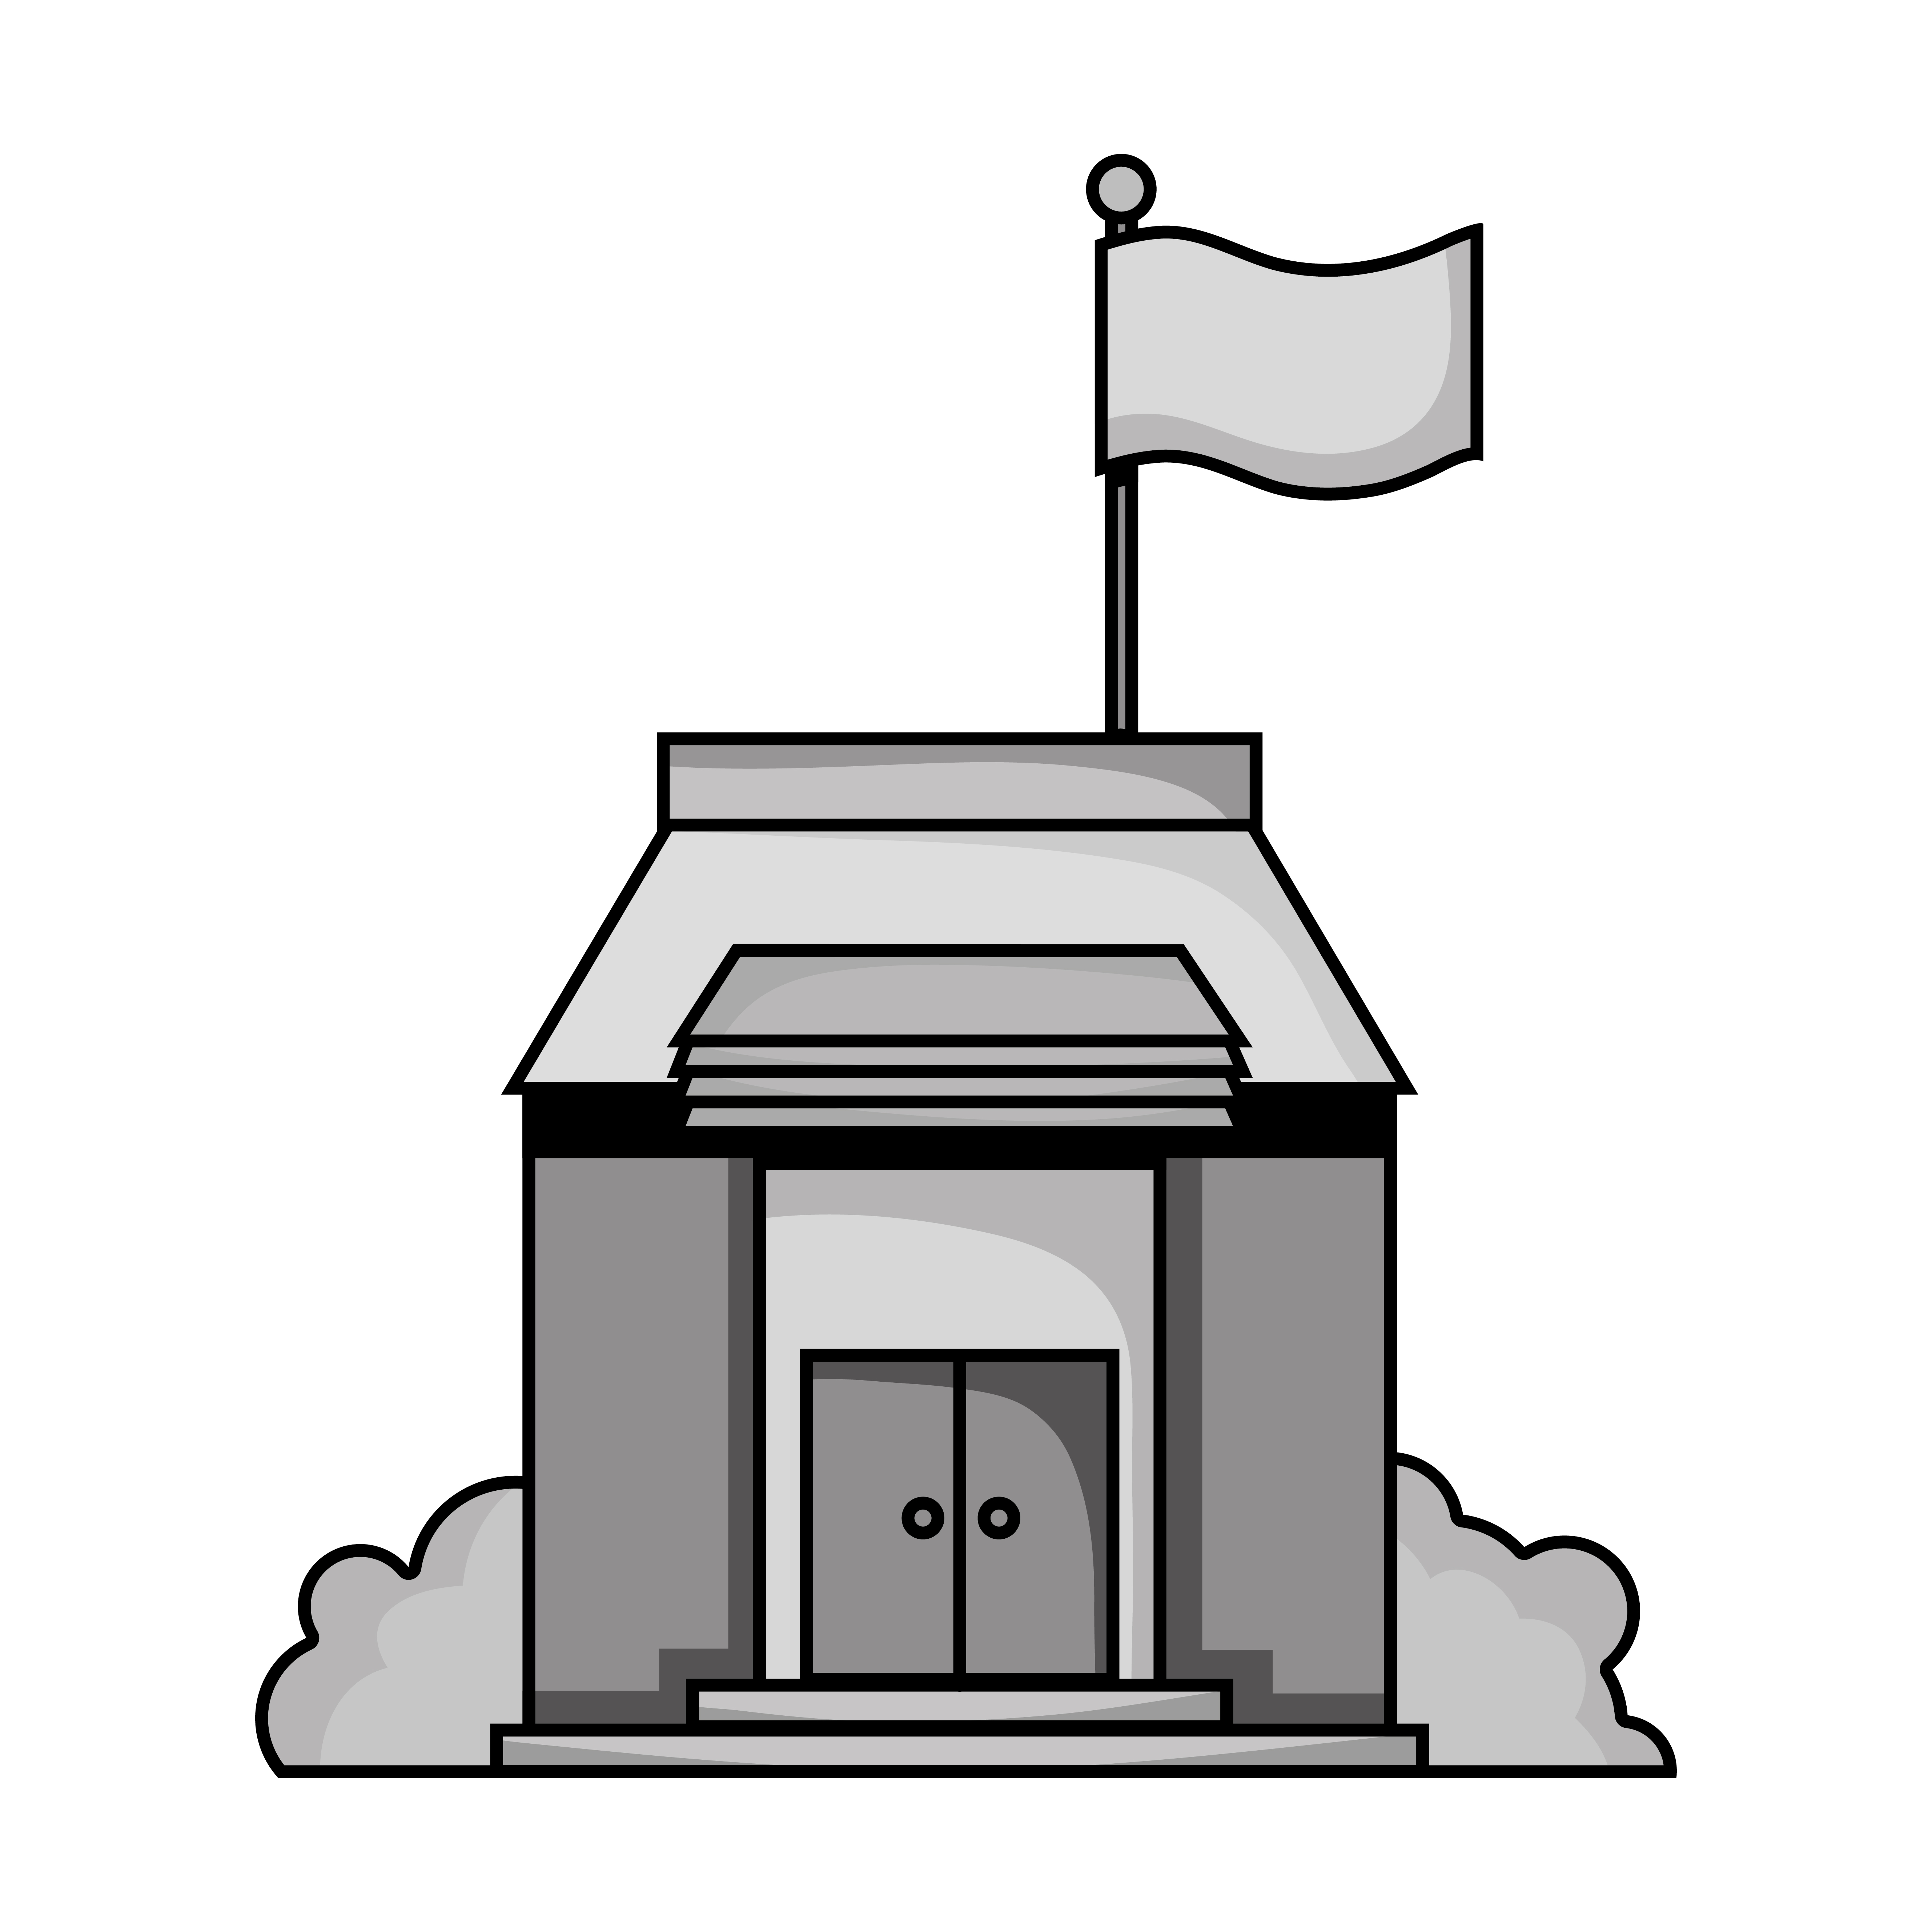 Grayscale School Education With Roof And Doors Design Download Free Vectors Clipart Graphics Vector Art